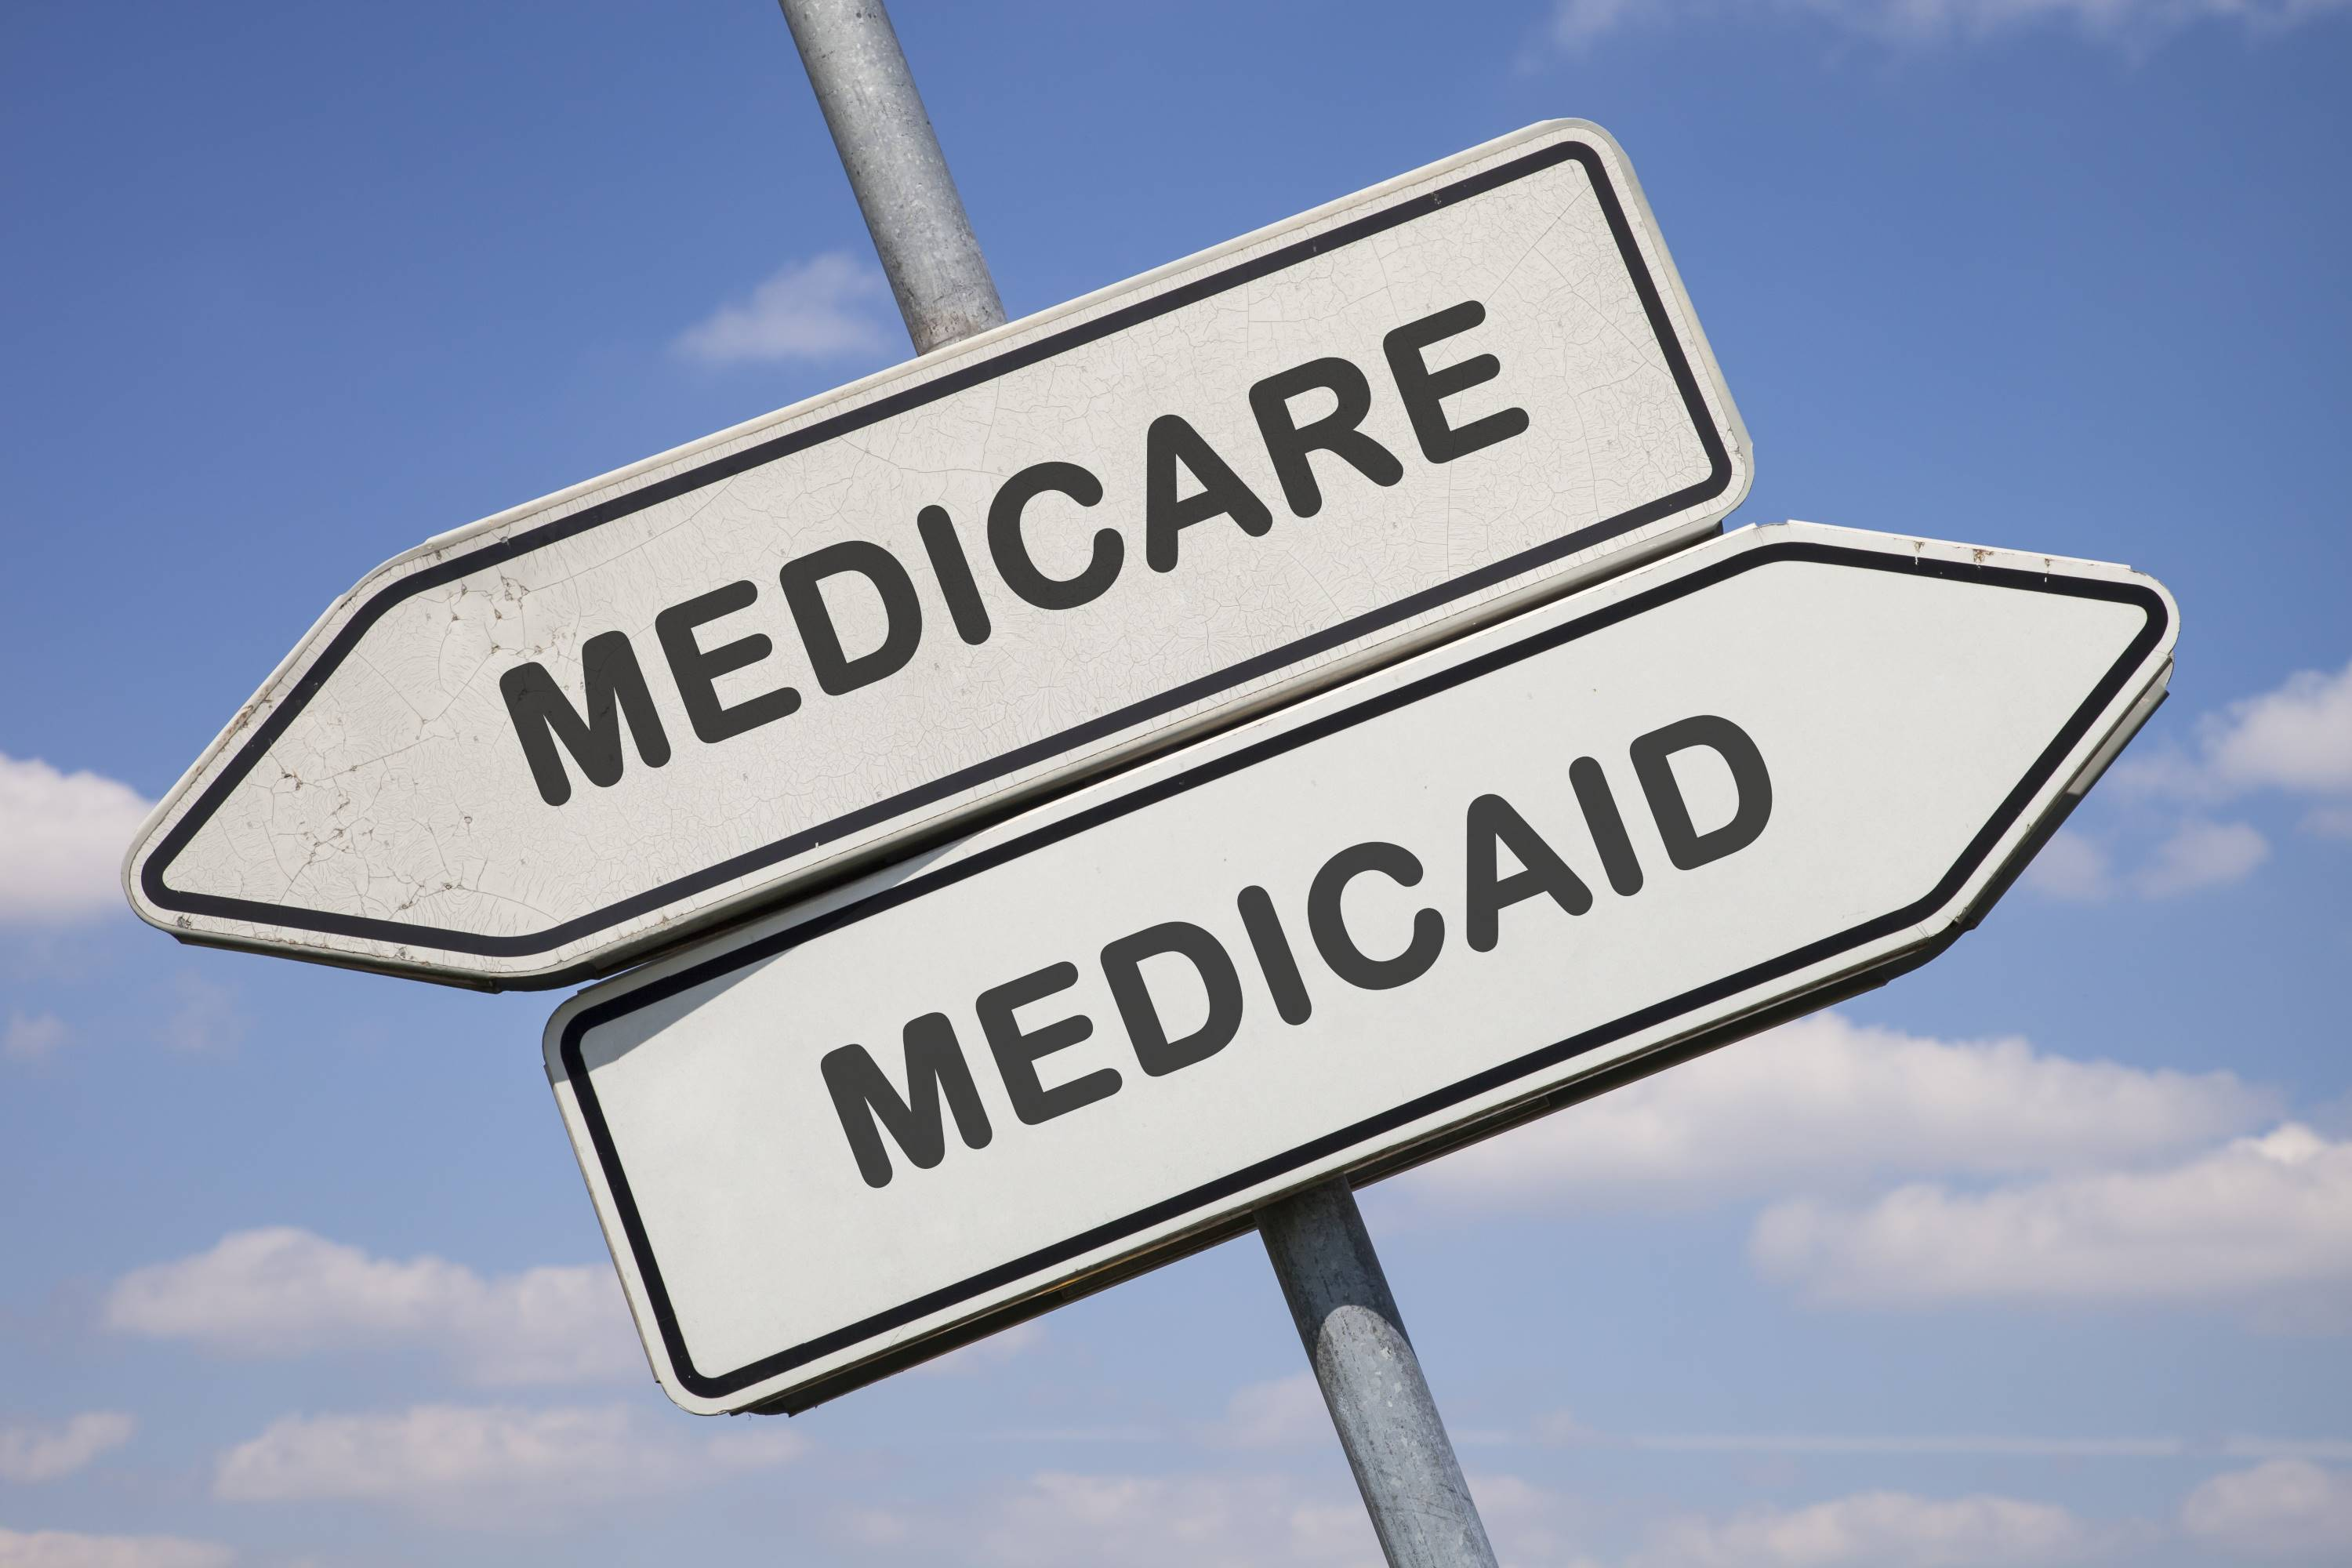 Medicaid and Medicare